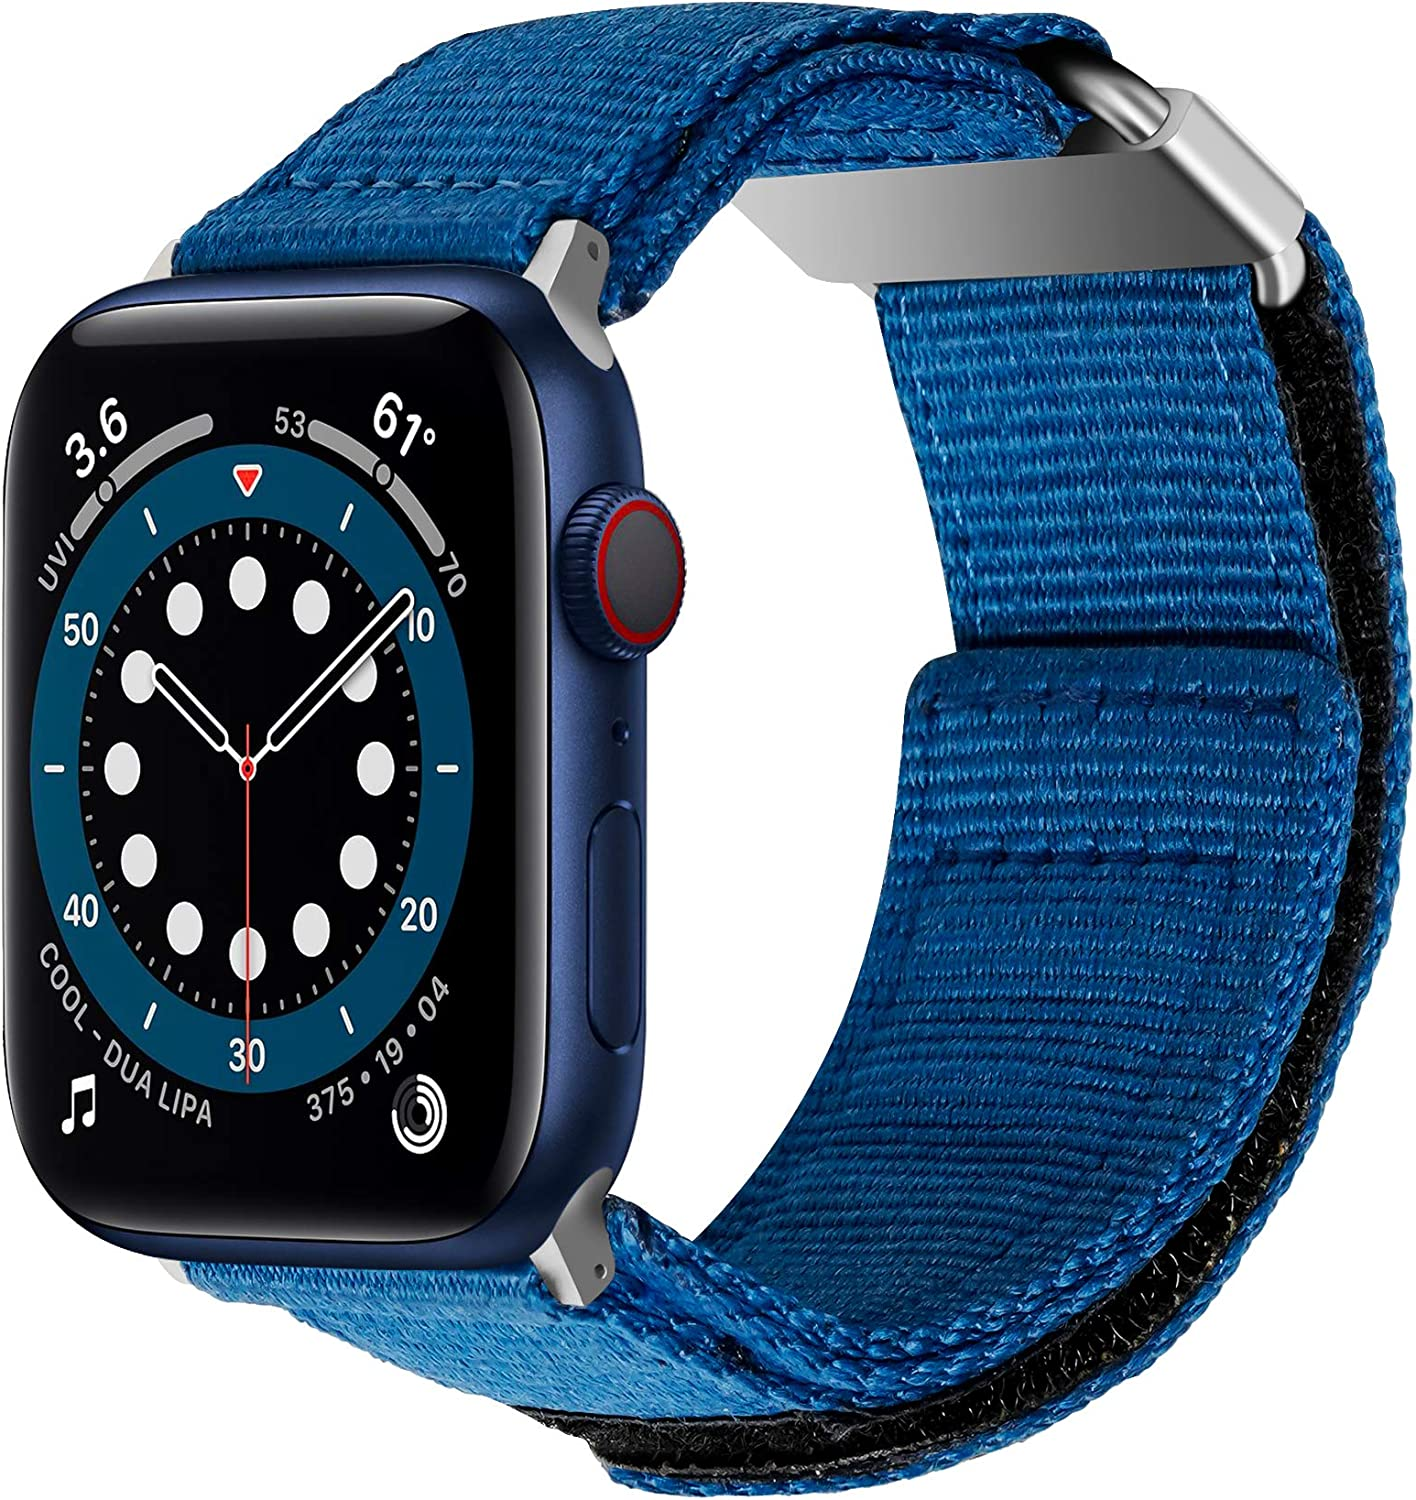 baozai Compatible with Apple Watch Band 44mm 42mm, iWatch Series 6/5/4/3/2/1 & Watch SE, Nylon Weave Loop Sport Strap with Metal Buckle for Men (Blue, 44mm/42mm)